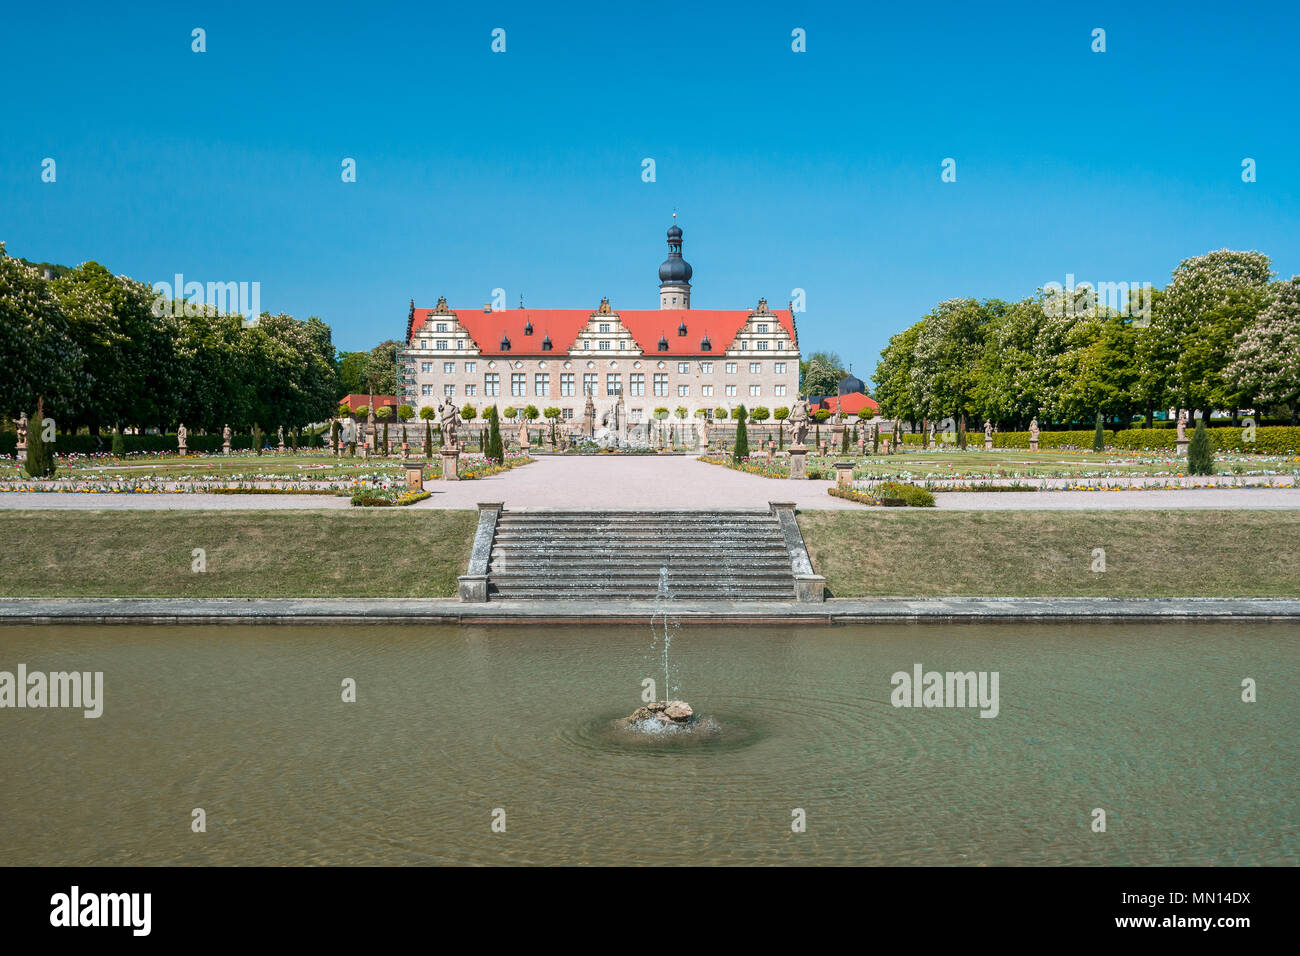 Majestic view of Weikersheim Schloss or Weikersheim Castle, Baden-Wurttemberg , Germany. - Stock Image